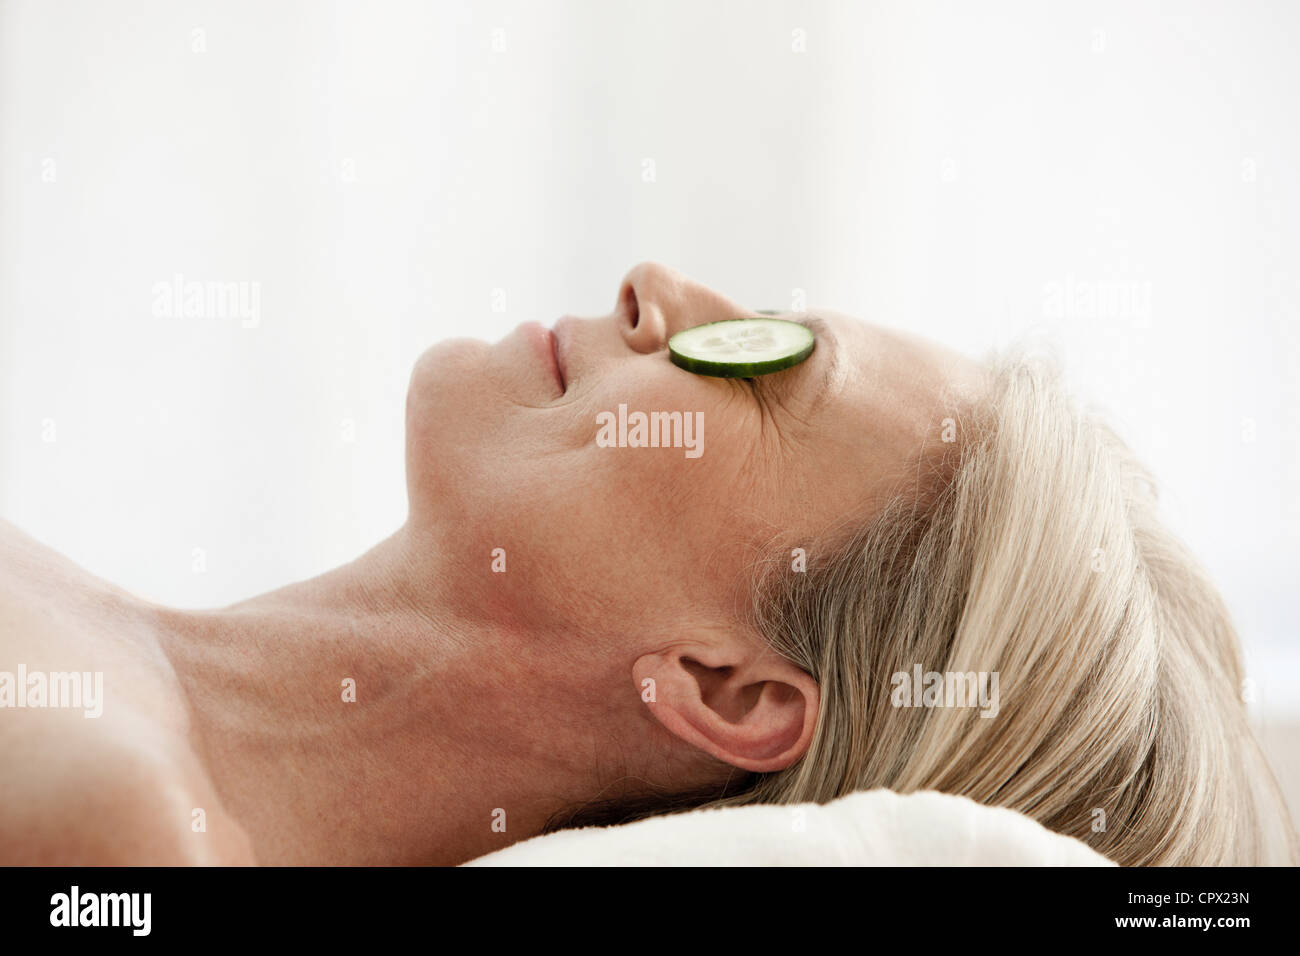 Mature woman relaxing with cucumber slices over eyes Stock Photo